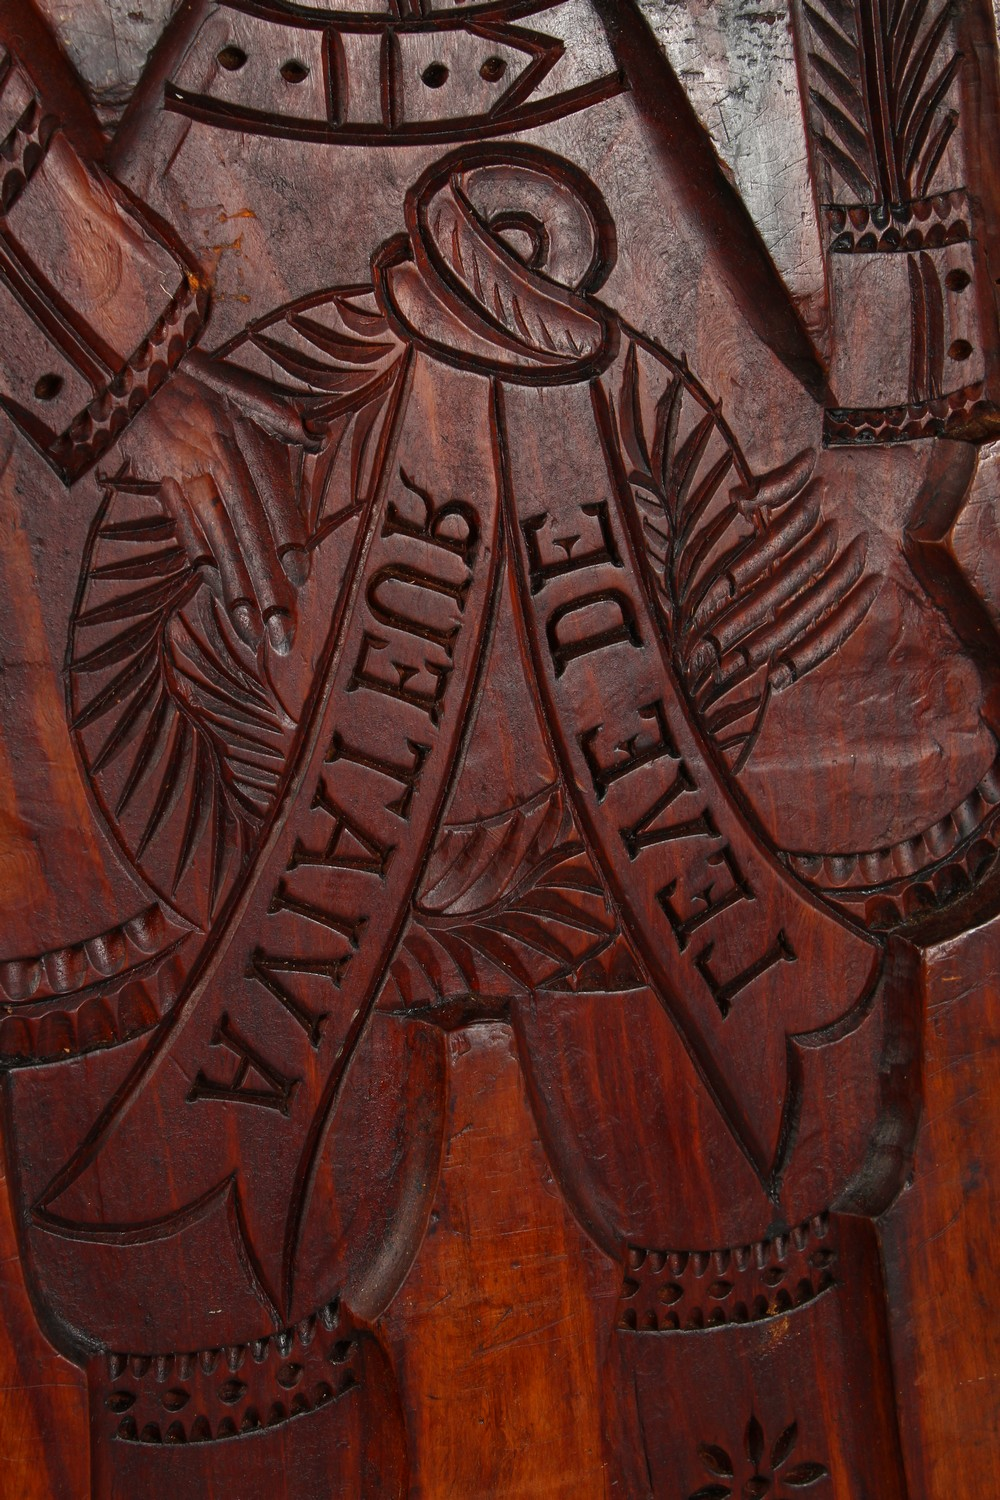 """Lot 1549 - A LARGE 19TH CENTURY DOUBLE SIDED WALNUT """"GINGERBREAD"""" MOULD, carved with figures. 42.5ins x 13ins."""